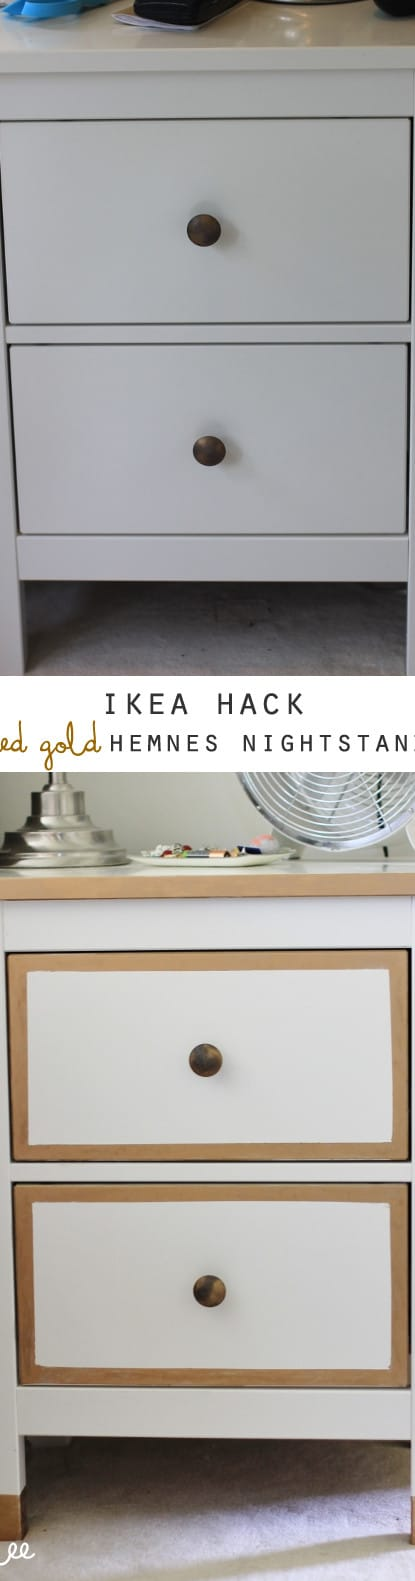 ikea hack nightstands before and after